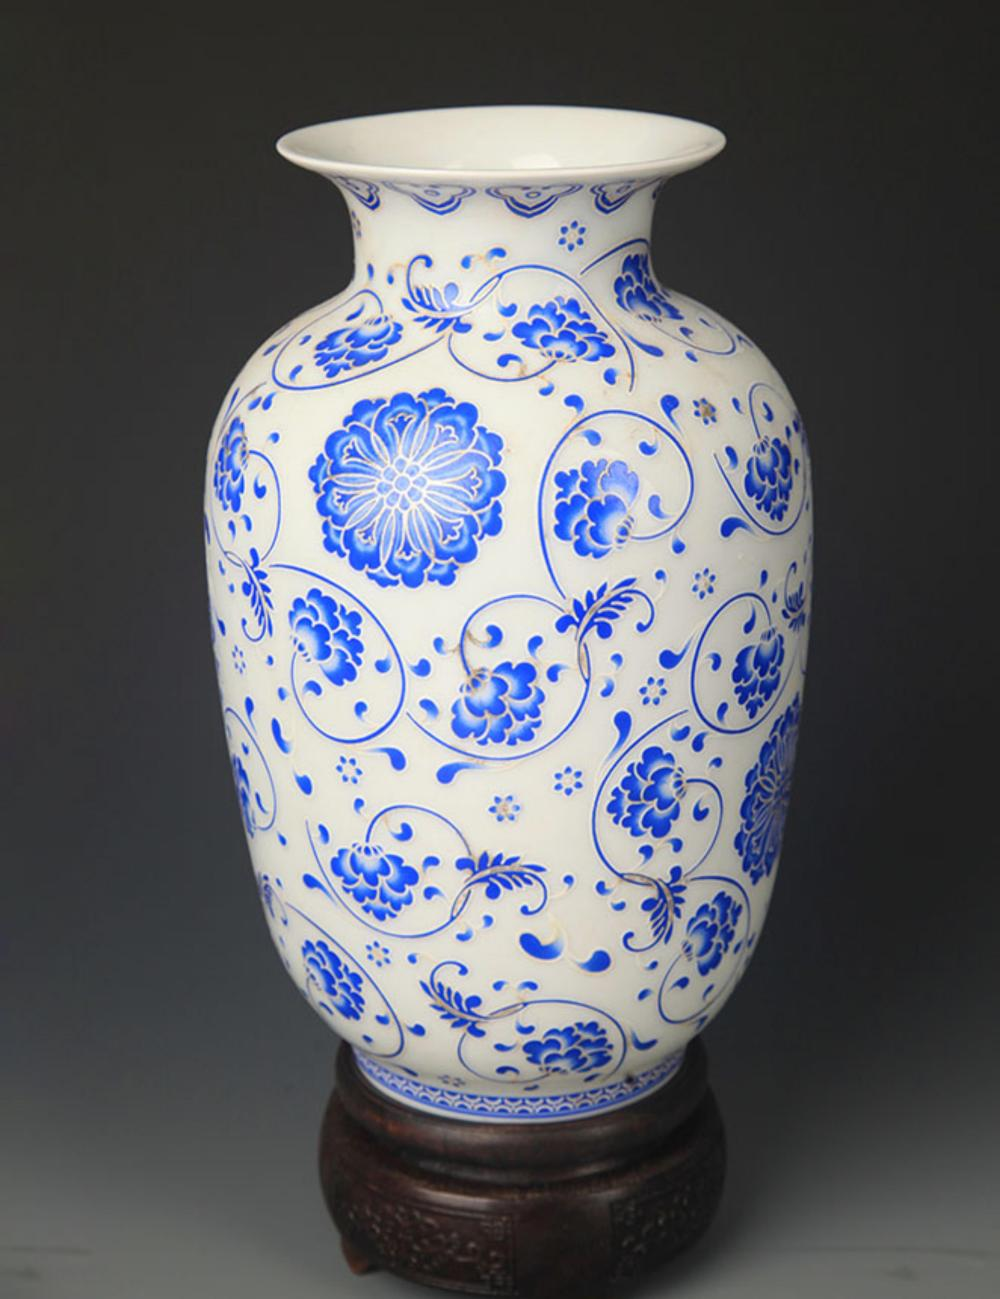 A BLUE AND WHITE FLOWER PATTERN LANTERN VASE